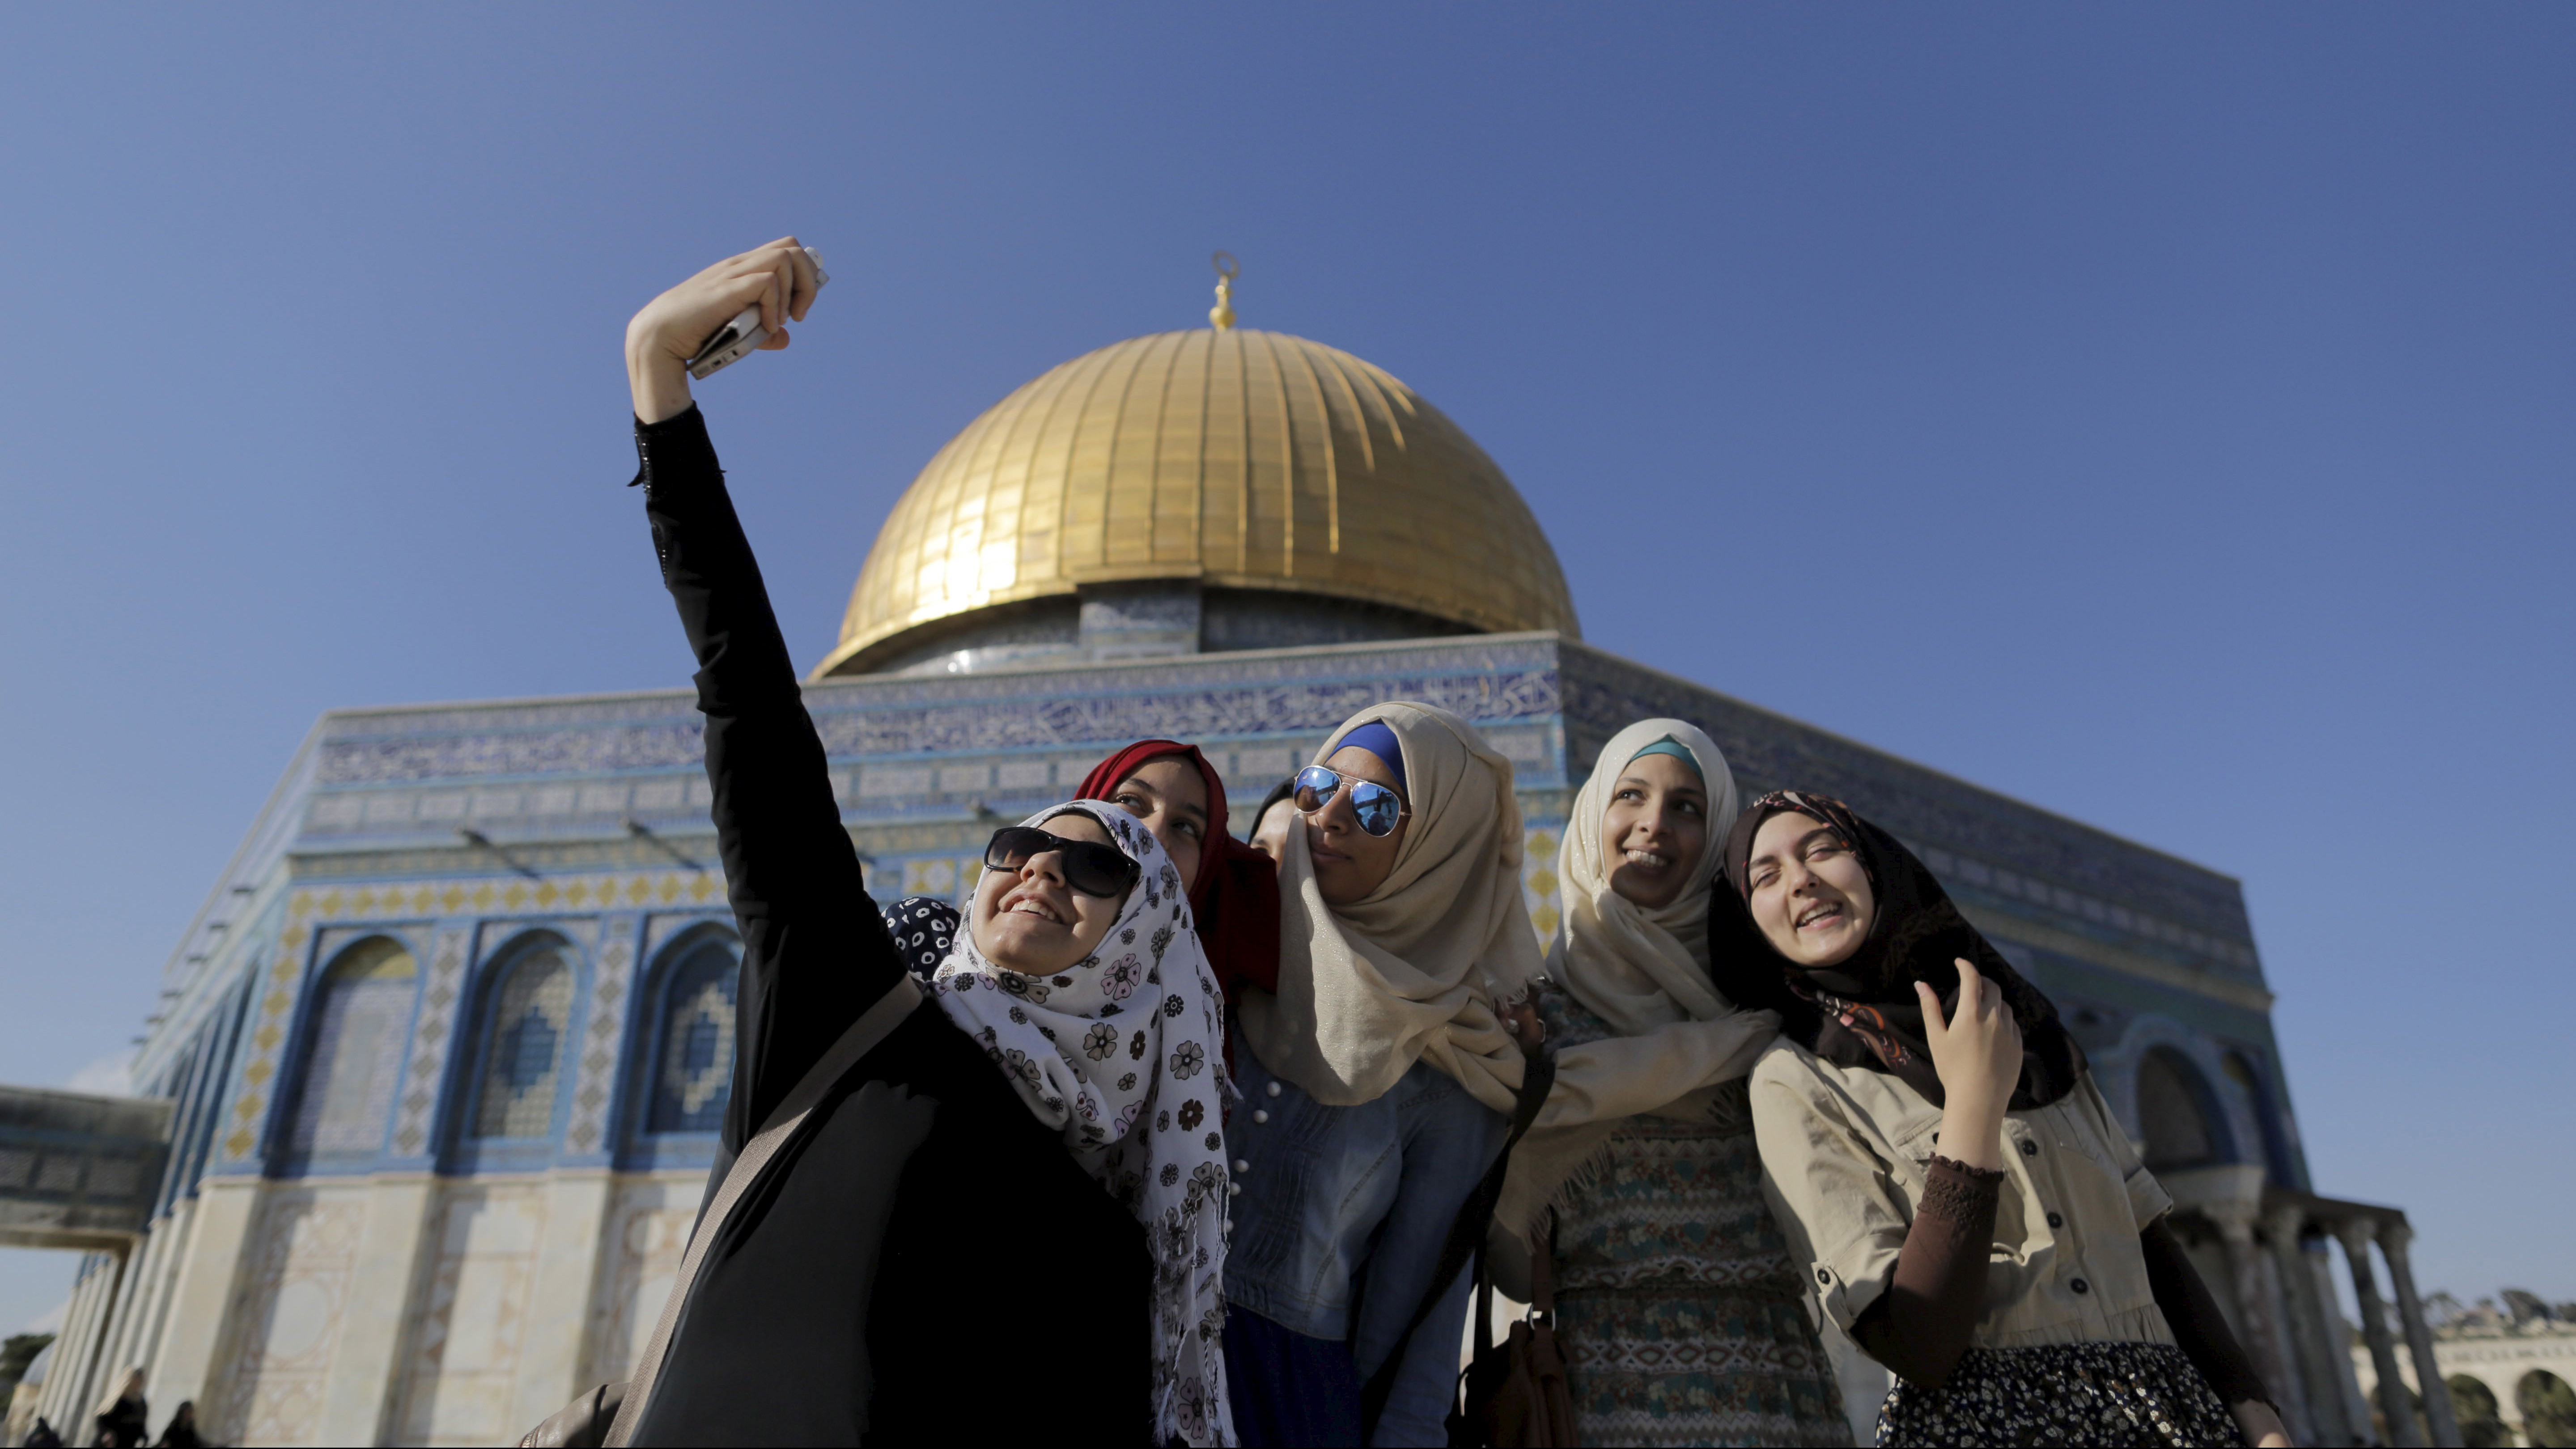 Palestinian Sanaa Abu Jaudi (L), 16, from the West Bank city of Jenin, takes a selfie photo with friends in front of the Dome of the Rock